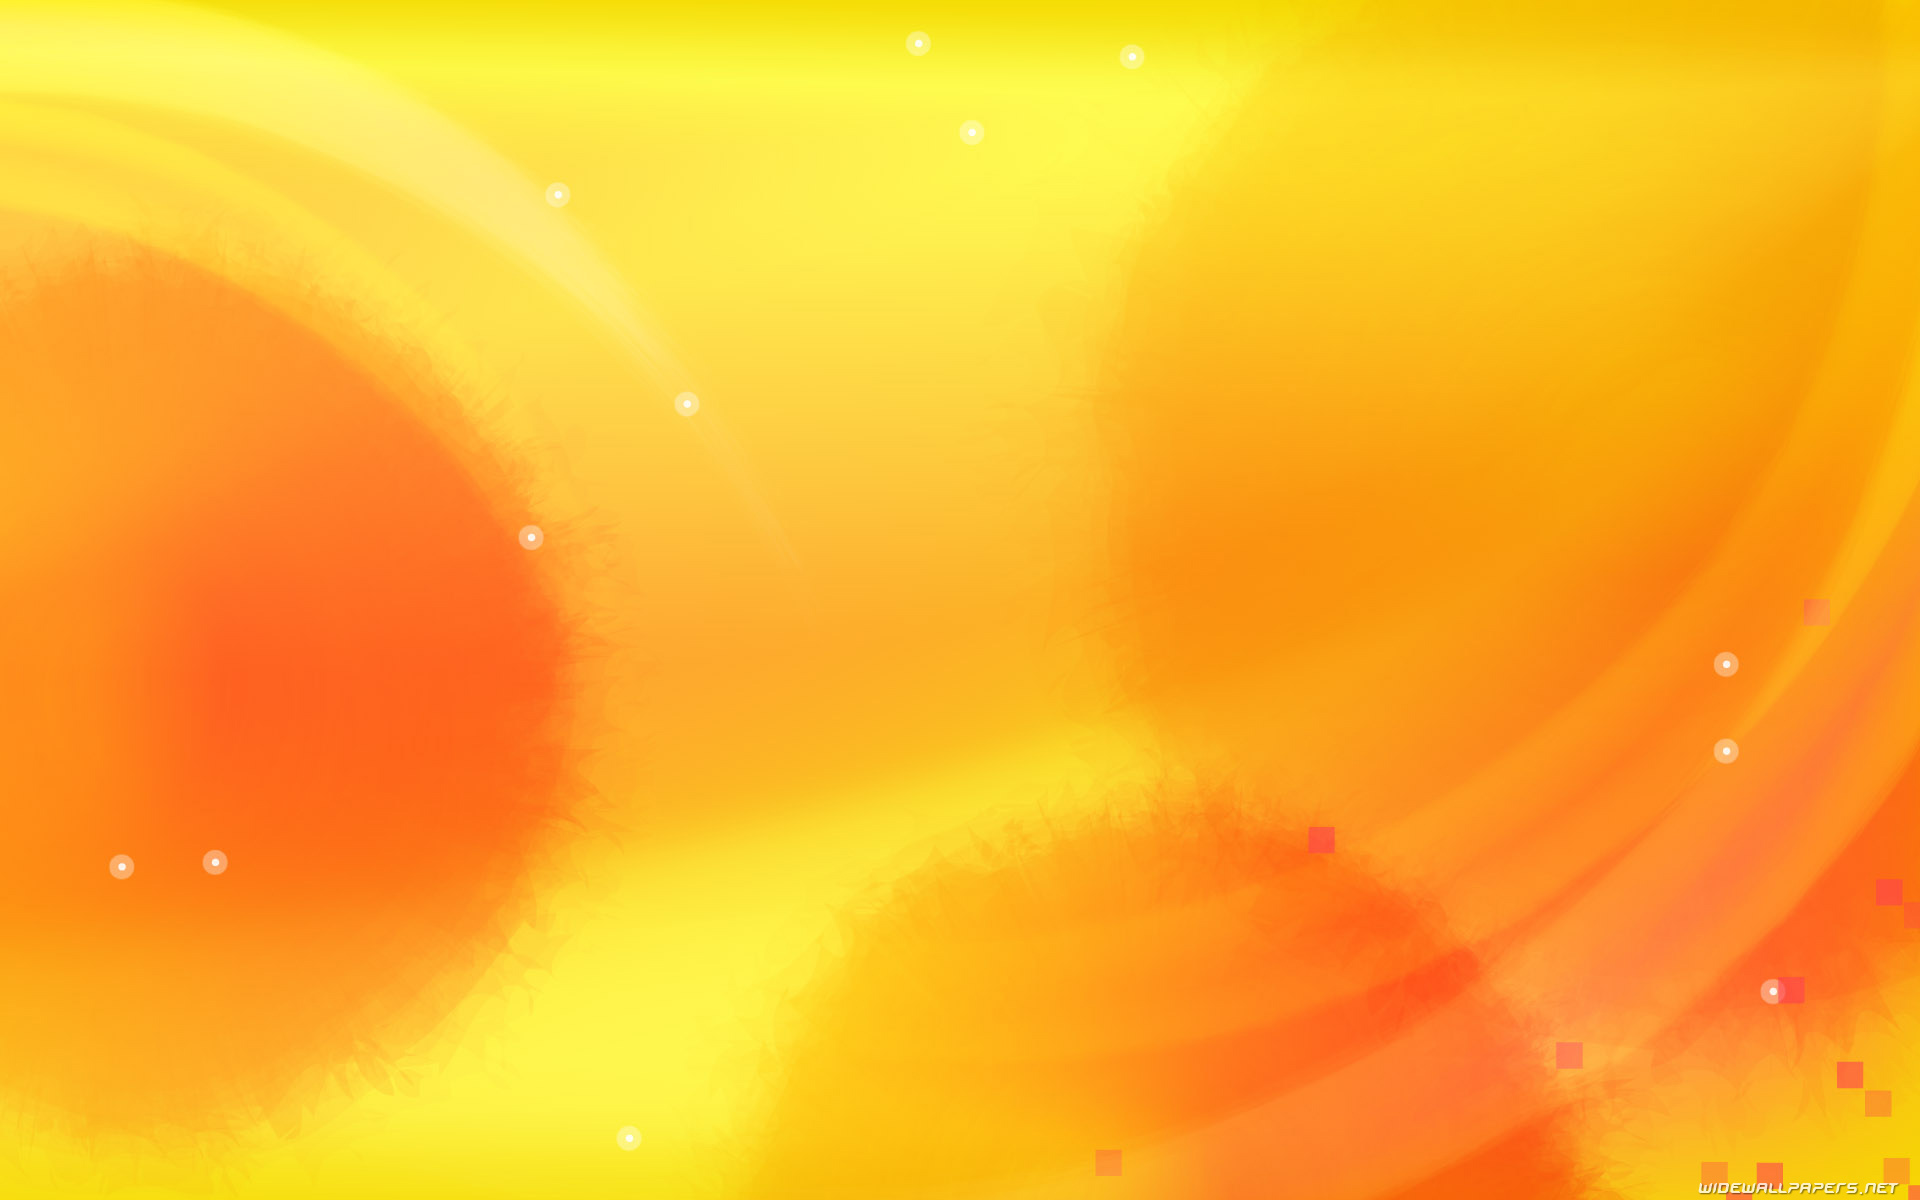 Background images yellow orange